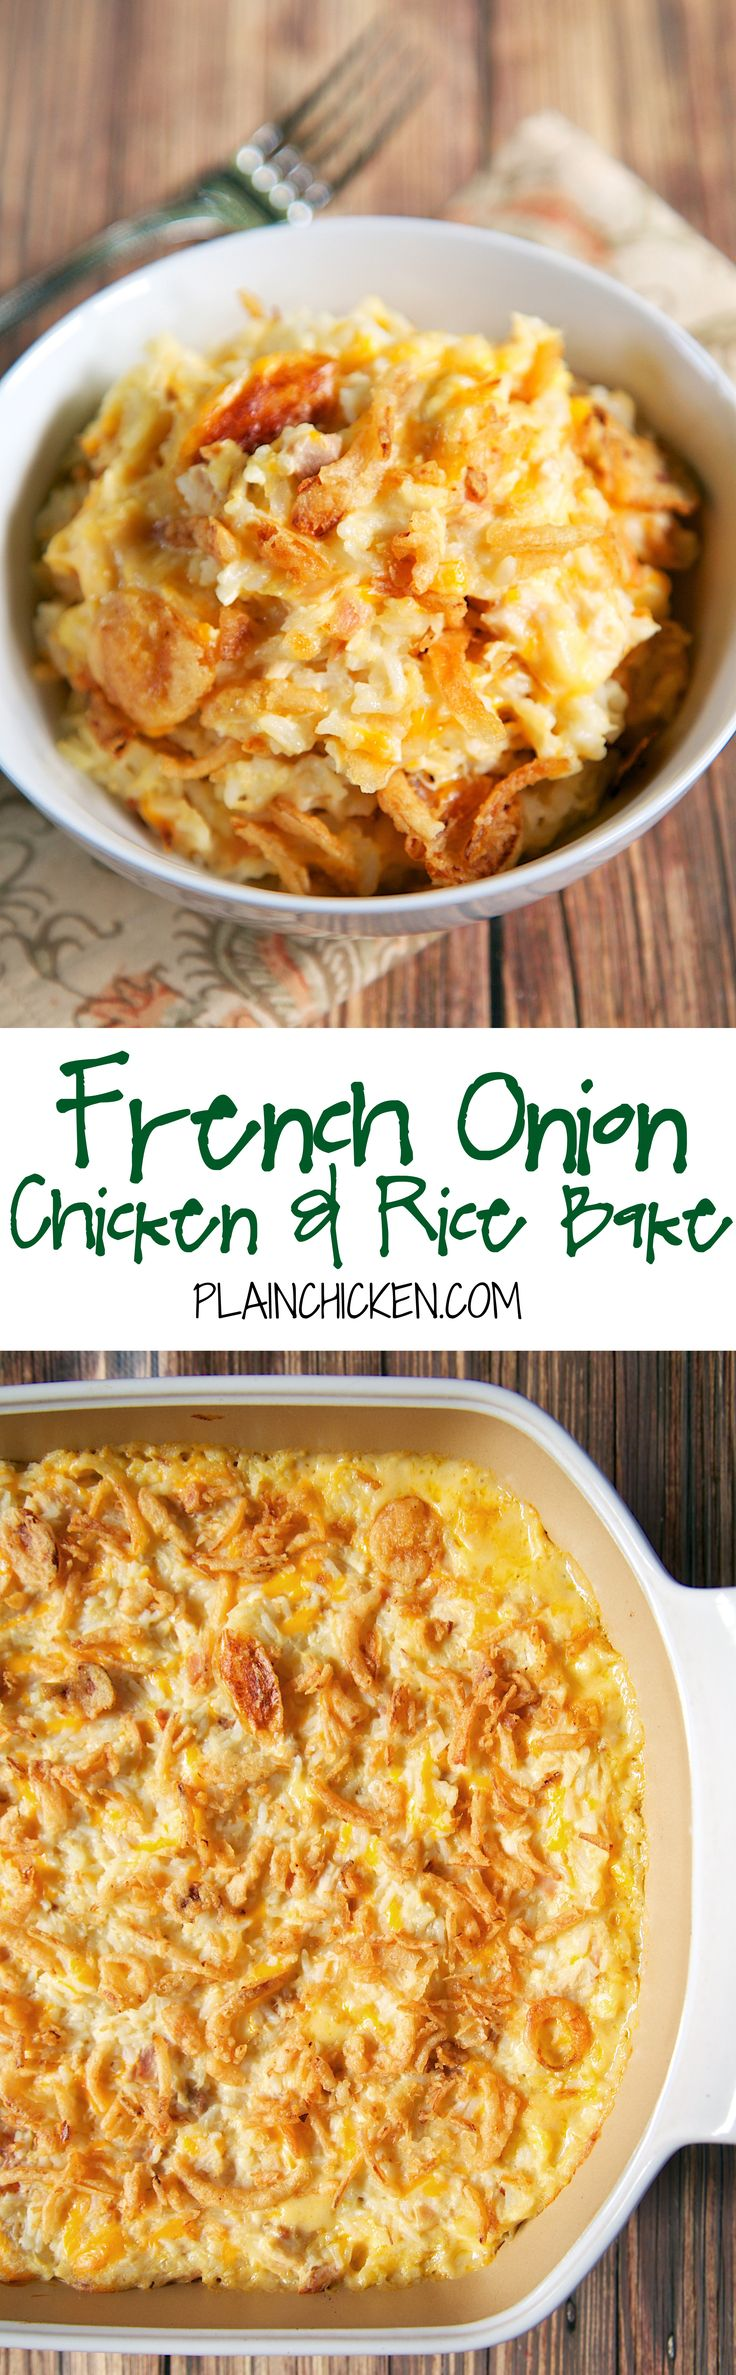 French Onion Chicken and Rice Bake recipe - chicken, french onion dip, cream of chicken soup, cheddar cheese, rice and french fried onions - use rotisserie chicken. On the table in 20 minutes! Super quick weeknight casserole!